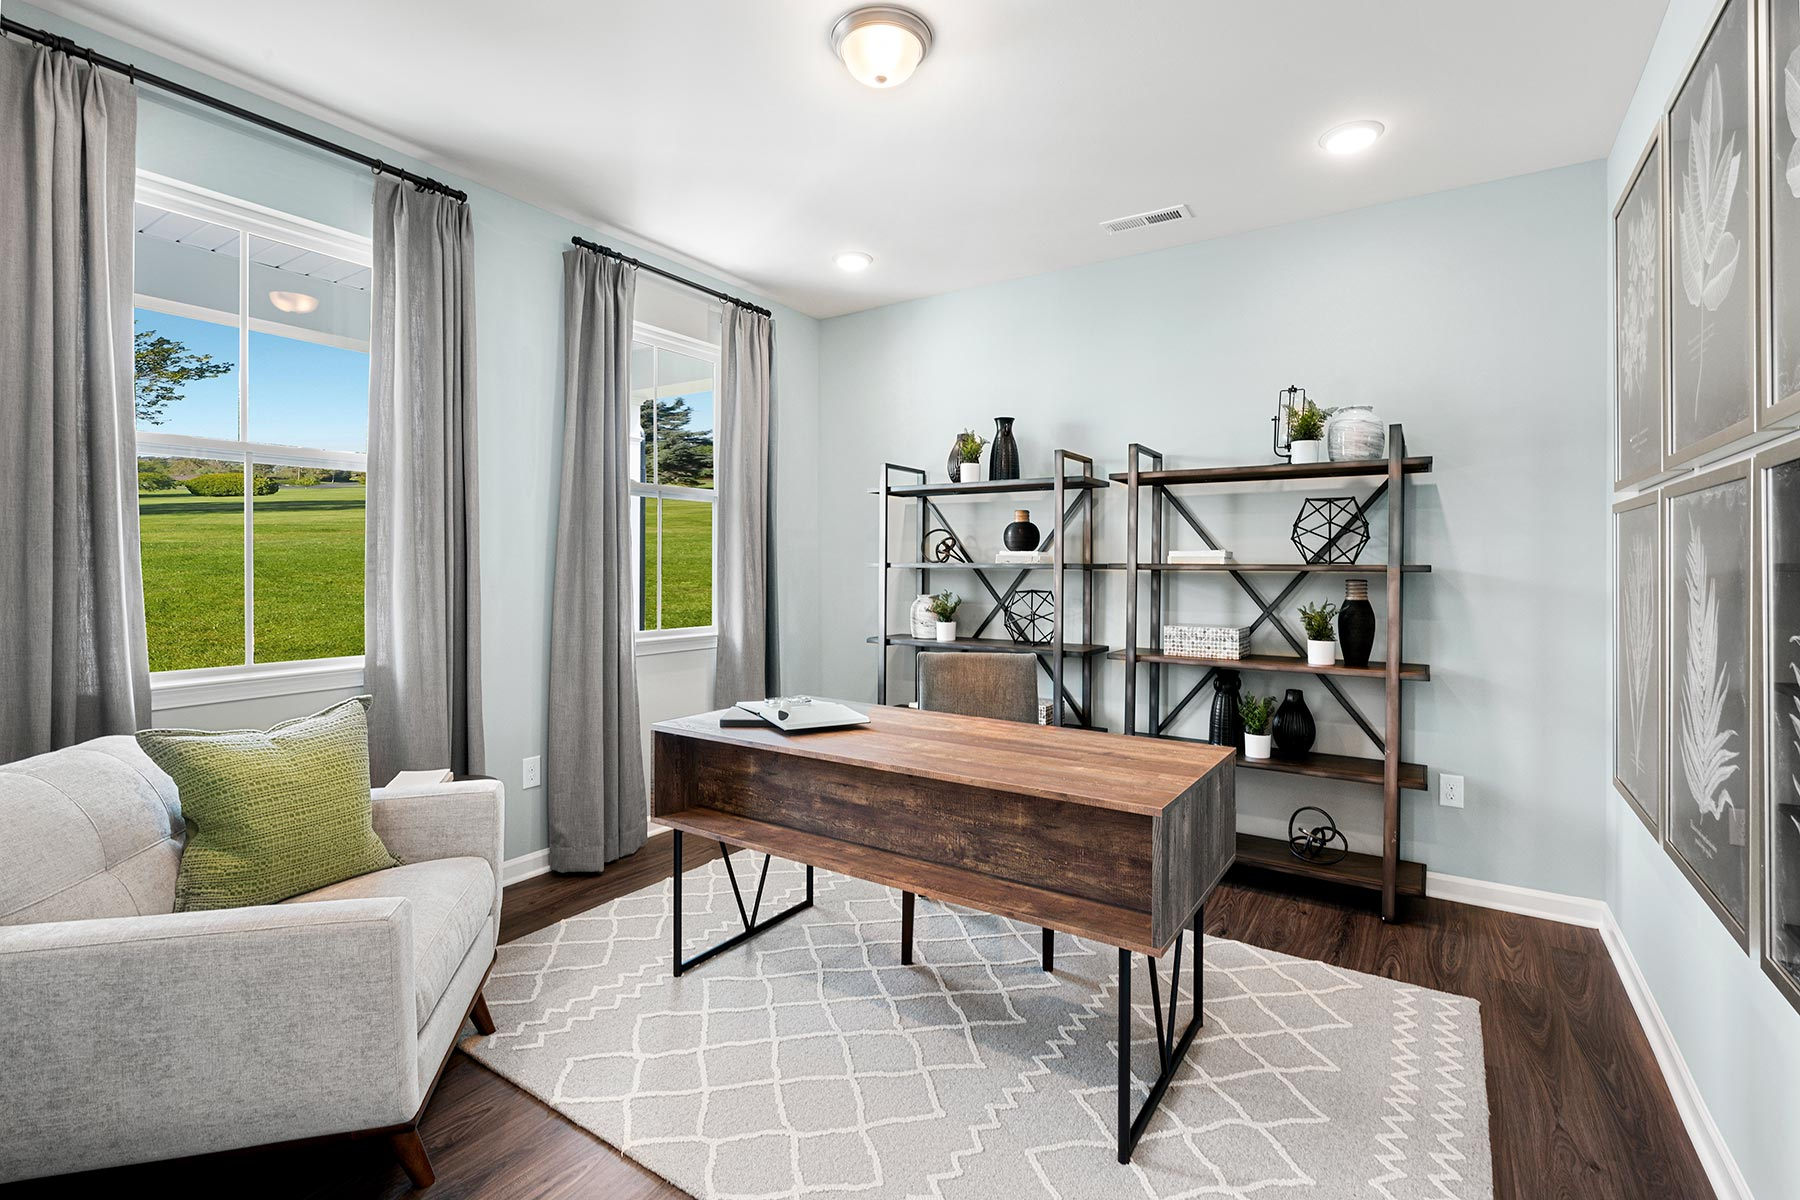 Gaines Plan Study Room at Oak Park in Garner North Carolina by Mattamy Homes